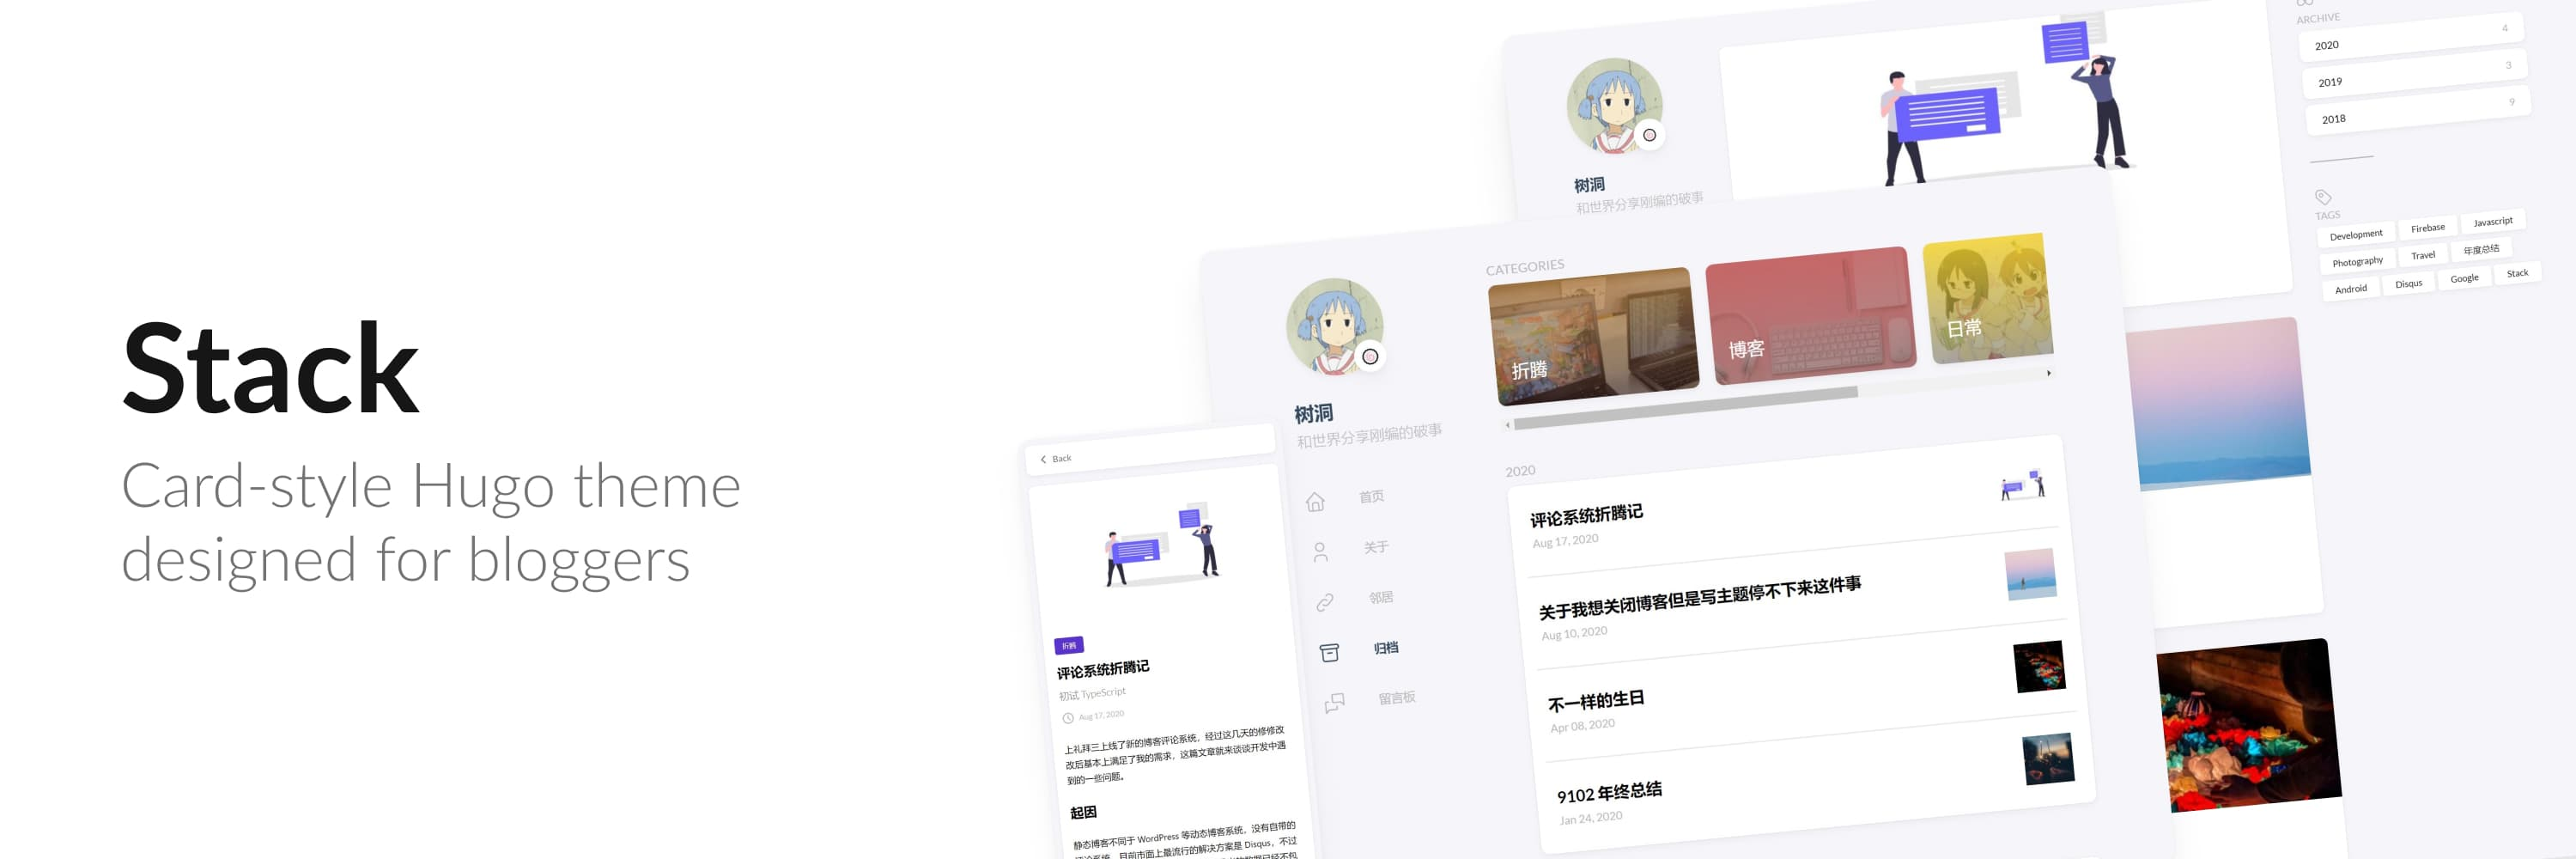 Featured image of Hugo 主题 Stack